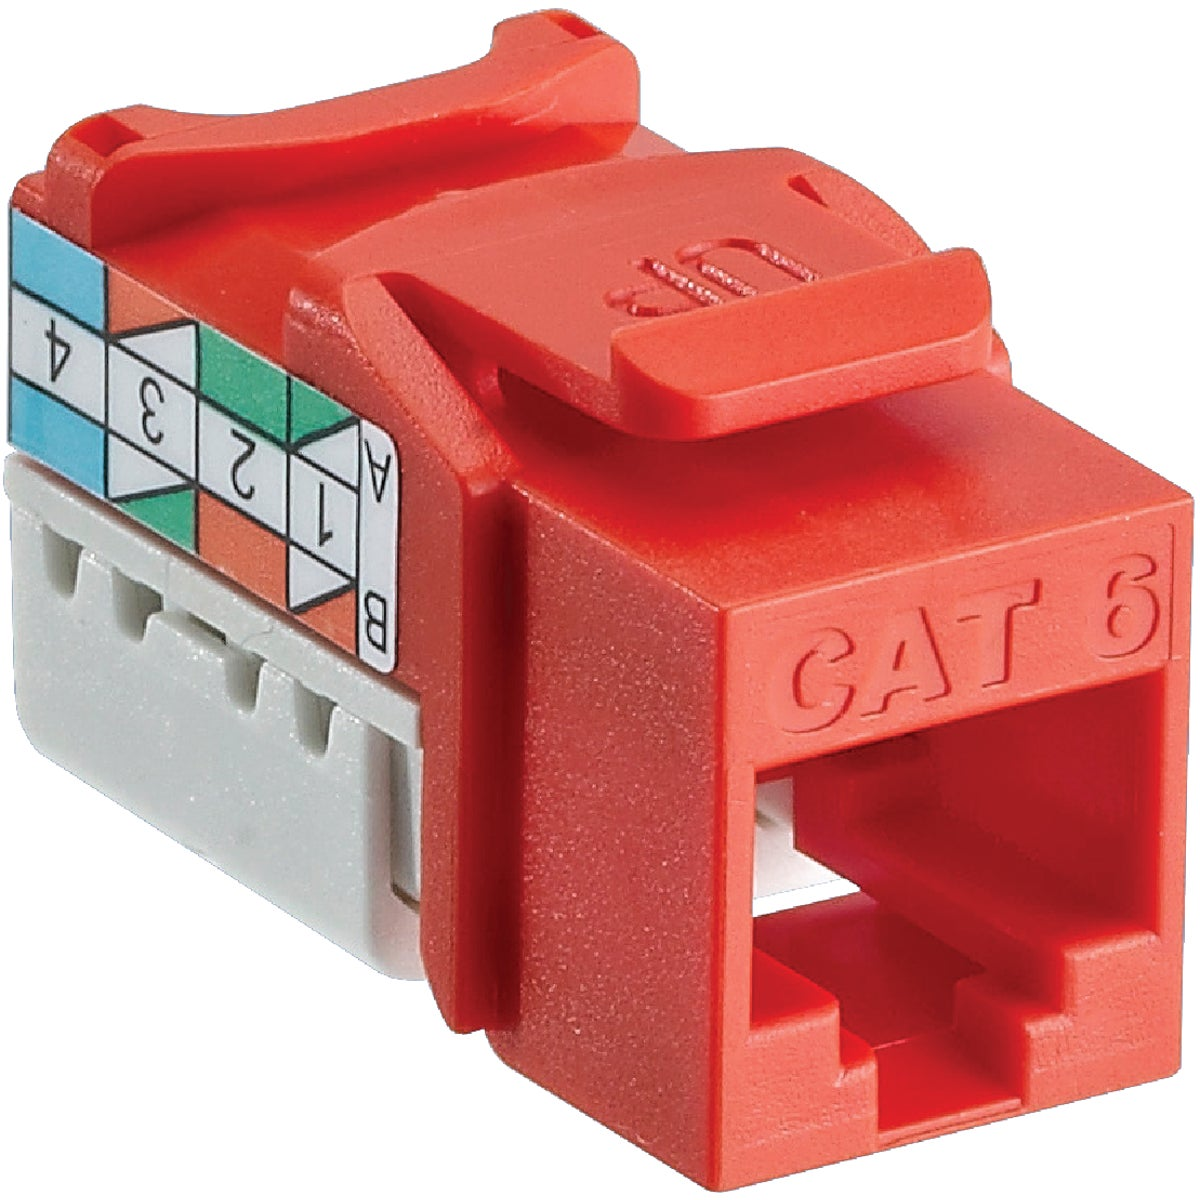 ORANGE 8-WIRE CAT6 JACK - R03-6G108-01O by Leviton Mfg Co